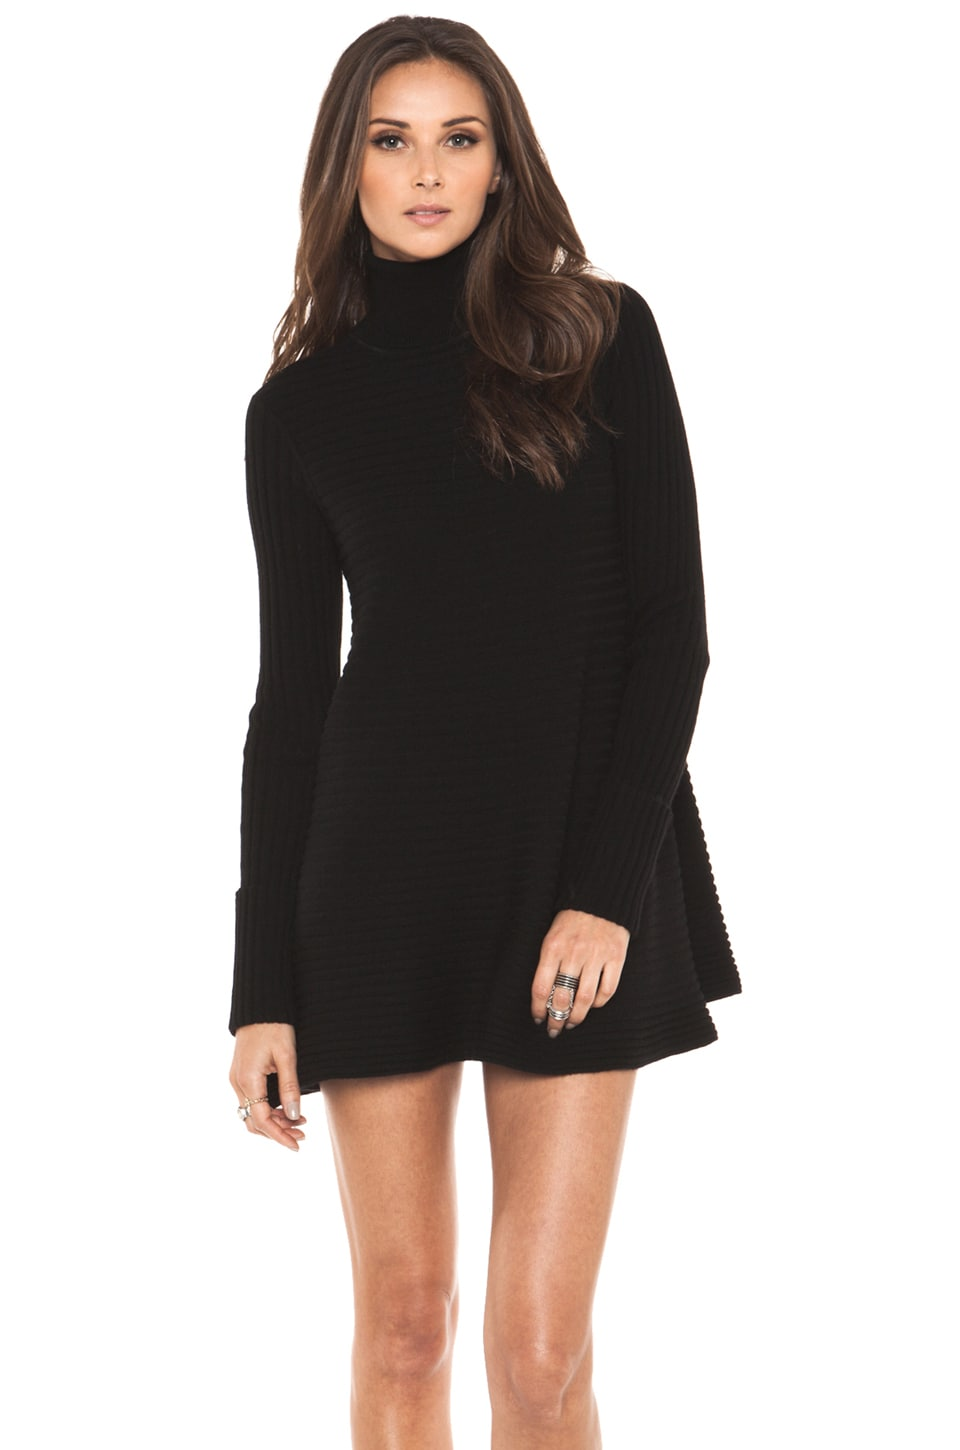 Autumn Cashmere Flared Rib Dress in Black